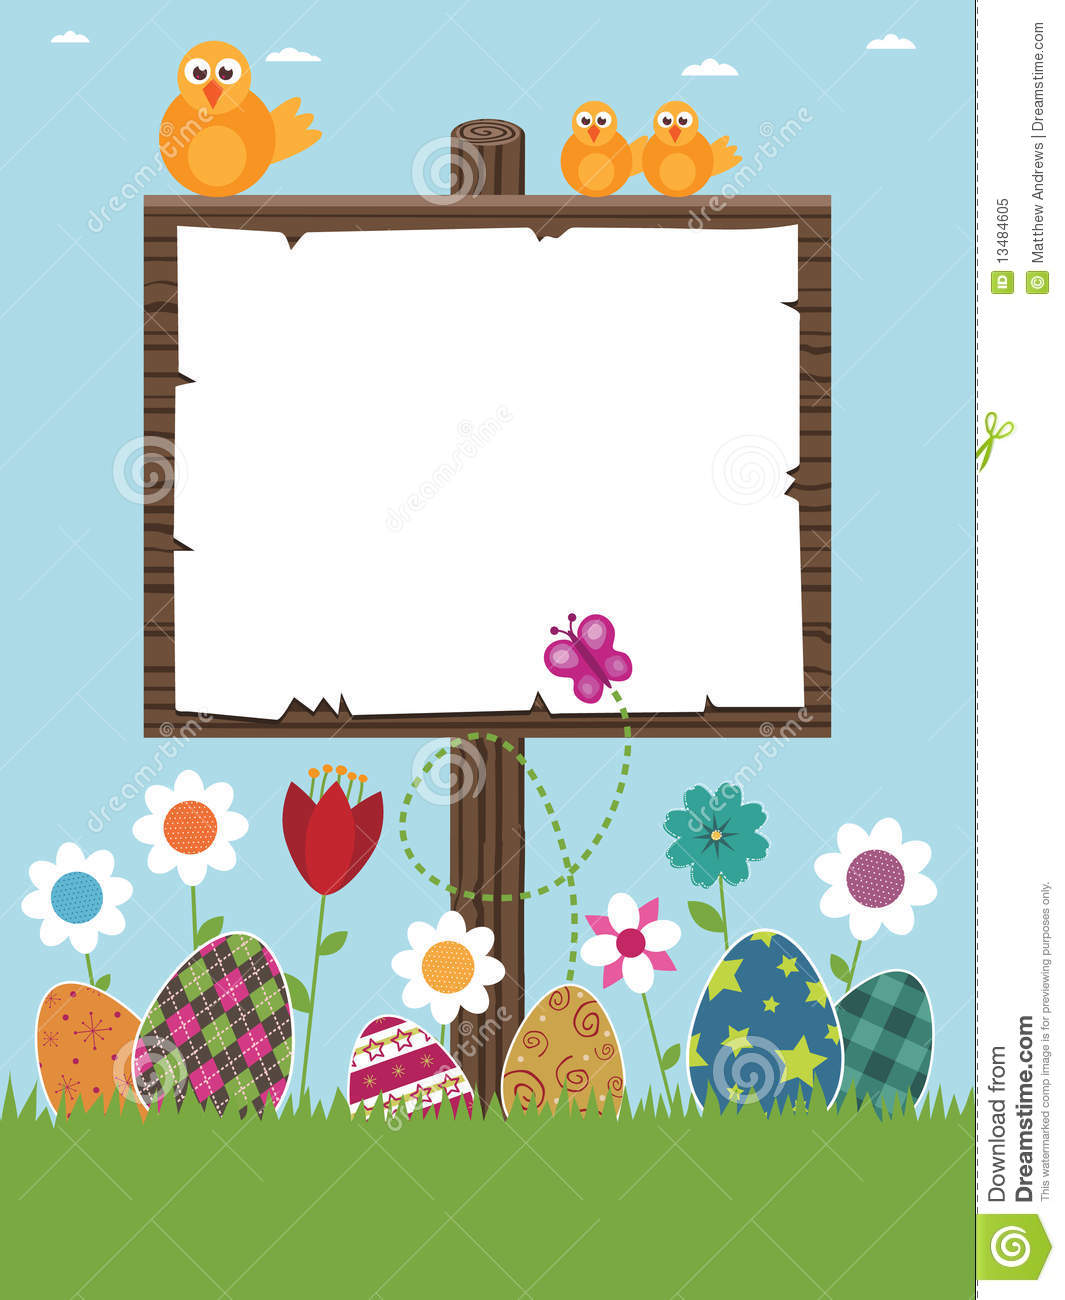 Easter sign post ready for your text with eggs, flowers and chicks.